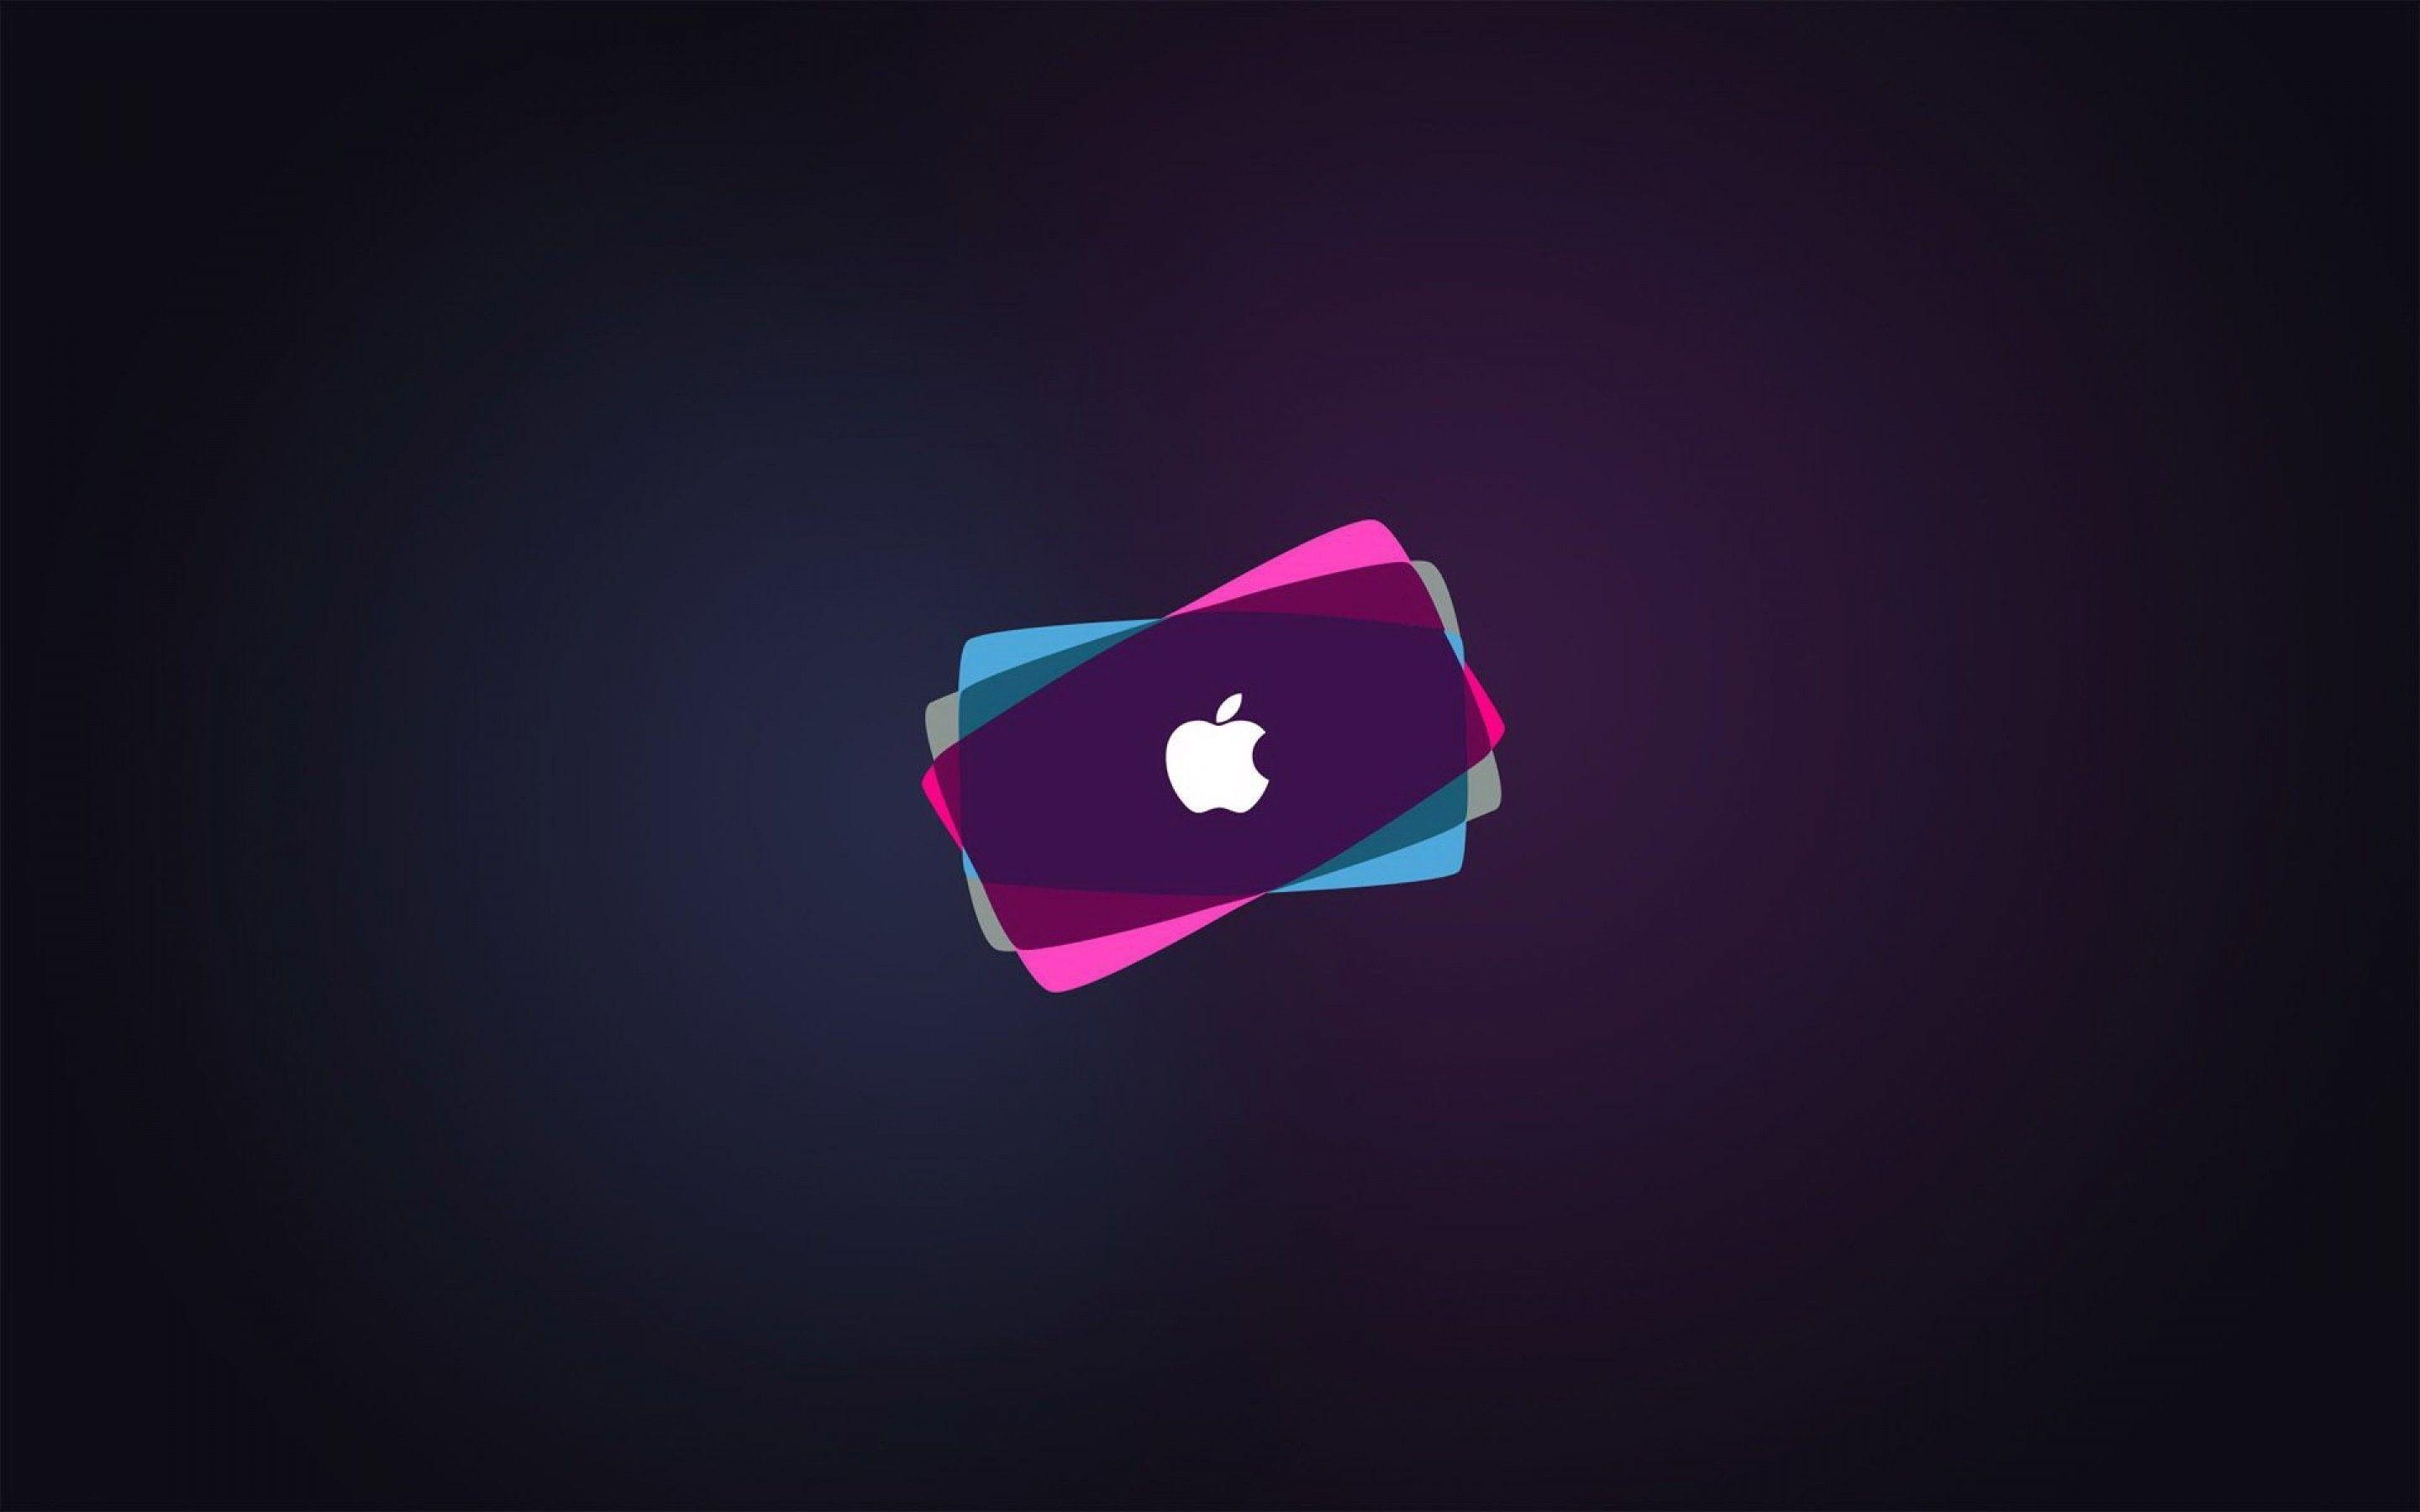 Apple Abstract Wallpapers - Wallpaper Cave